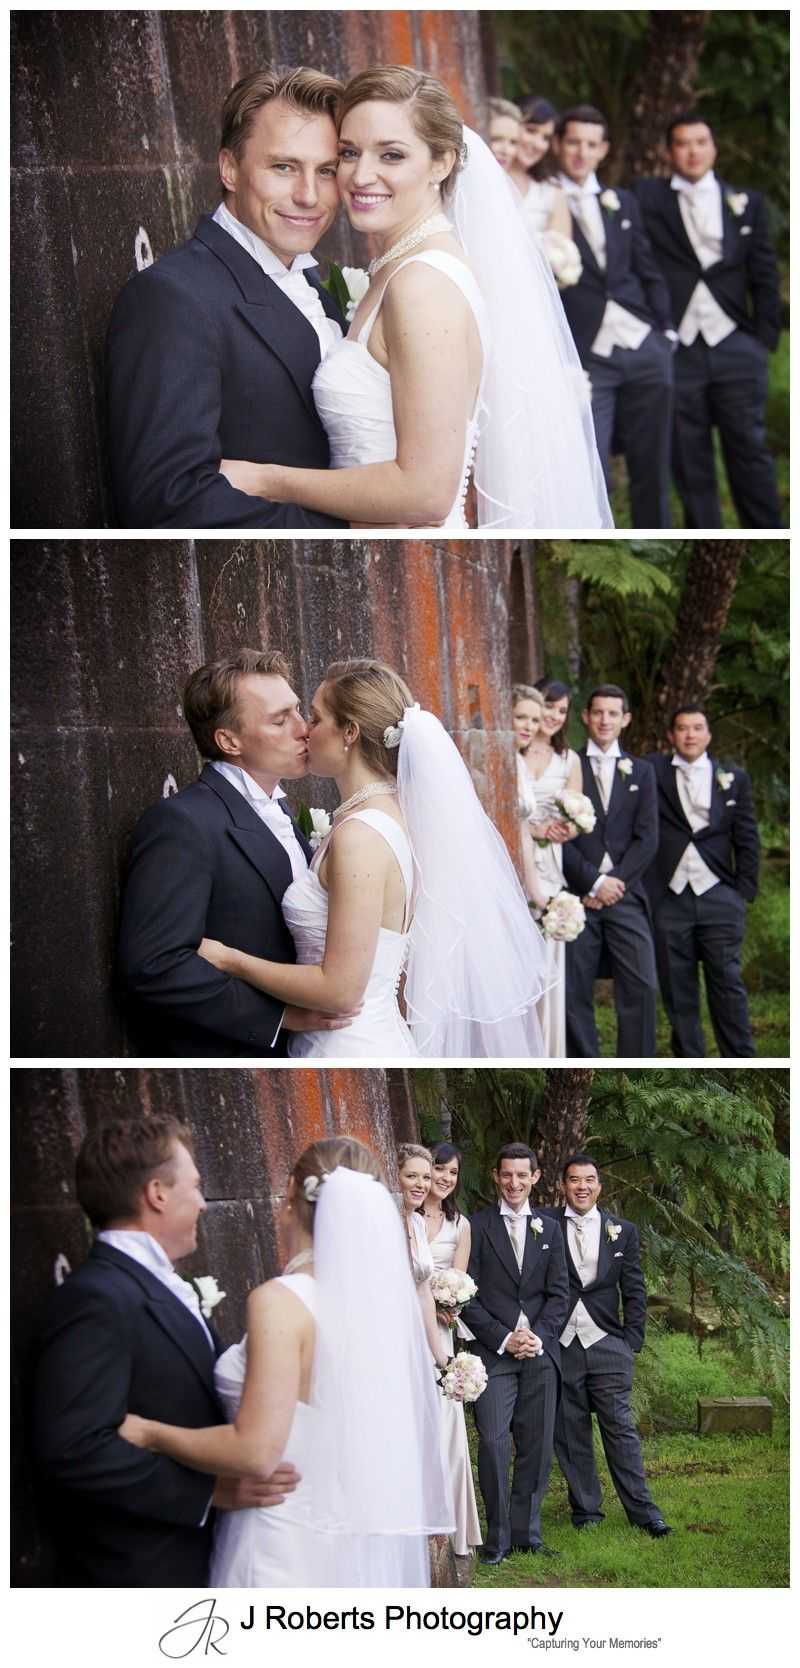 Bridal couple with bridal party watching - wedding photography sydney